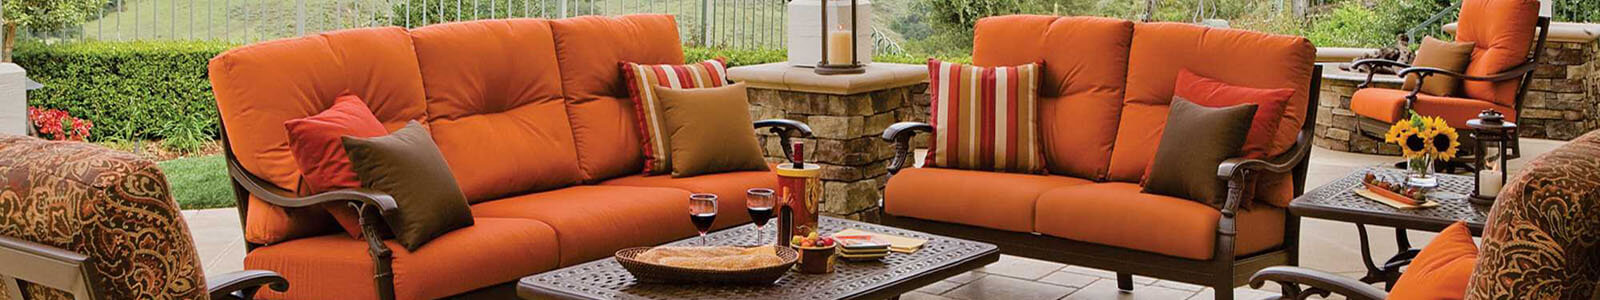 Tropitone: Outdoor Patio Tropitone Furniture Banner